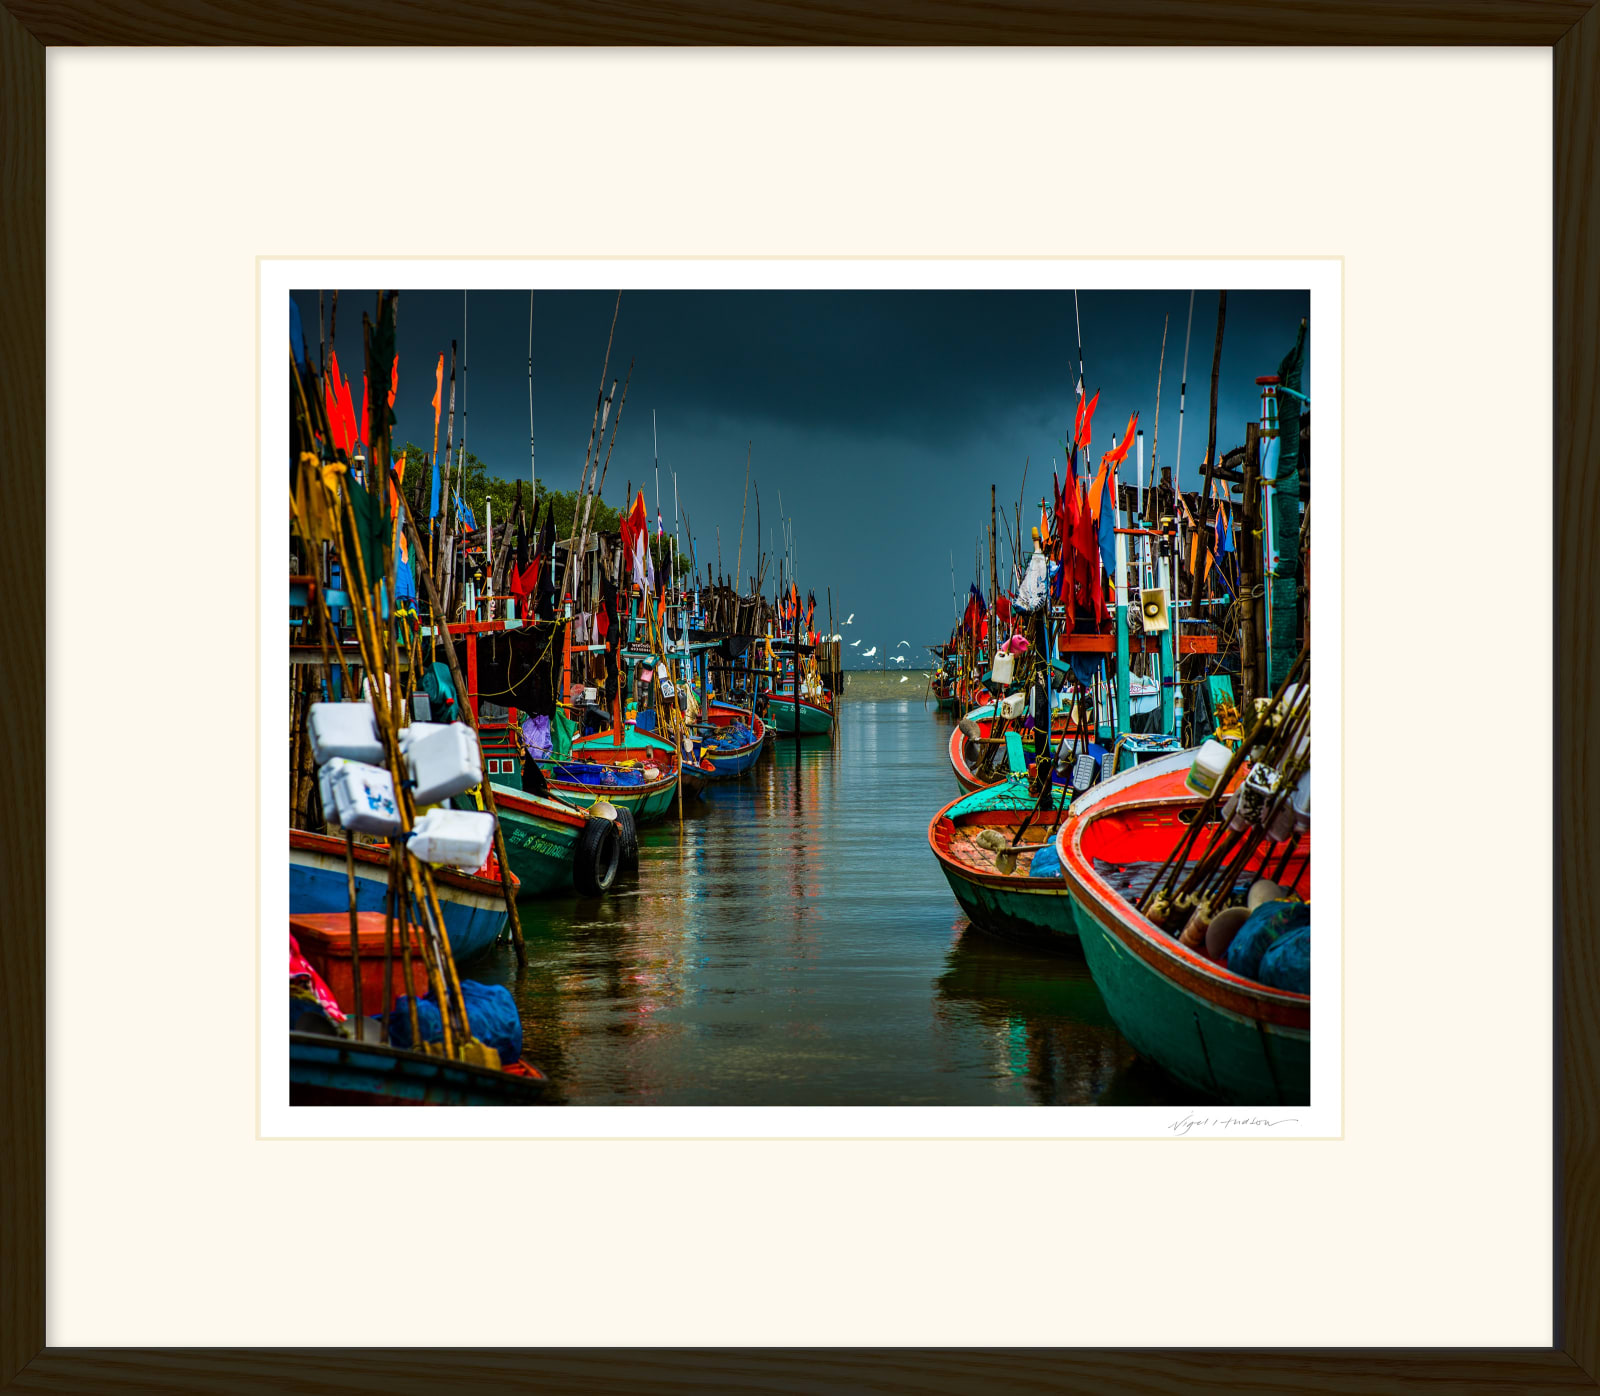 'ON THE ROAD TO HUA HIN' Archival Pigment Print on Platinum Etching Fine Art Paper. Framed in an Oiled Walnut Cushion Frame and protected with crystal clear Water White Glass. Available in an edition of 3 in three sizes. Prices from £245.00 including first class courier delivery within five working days.